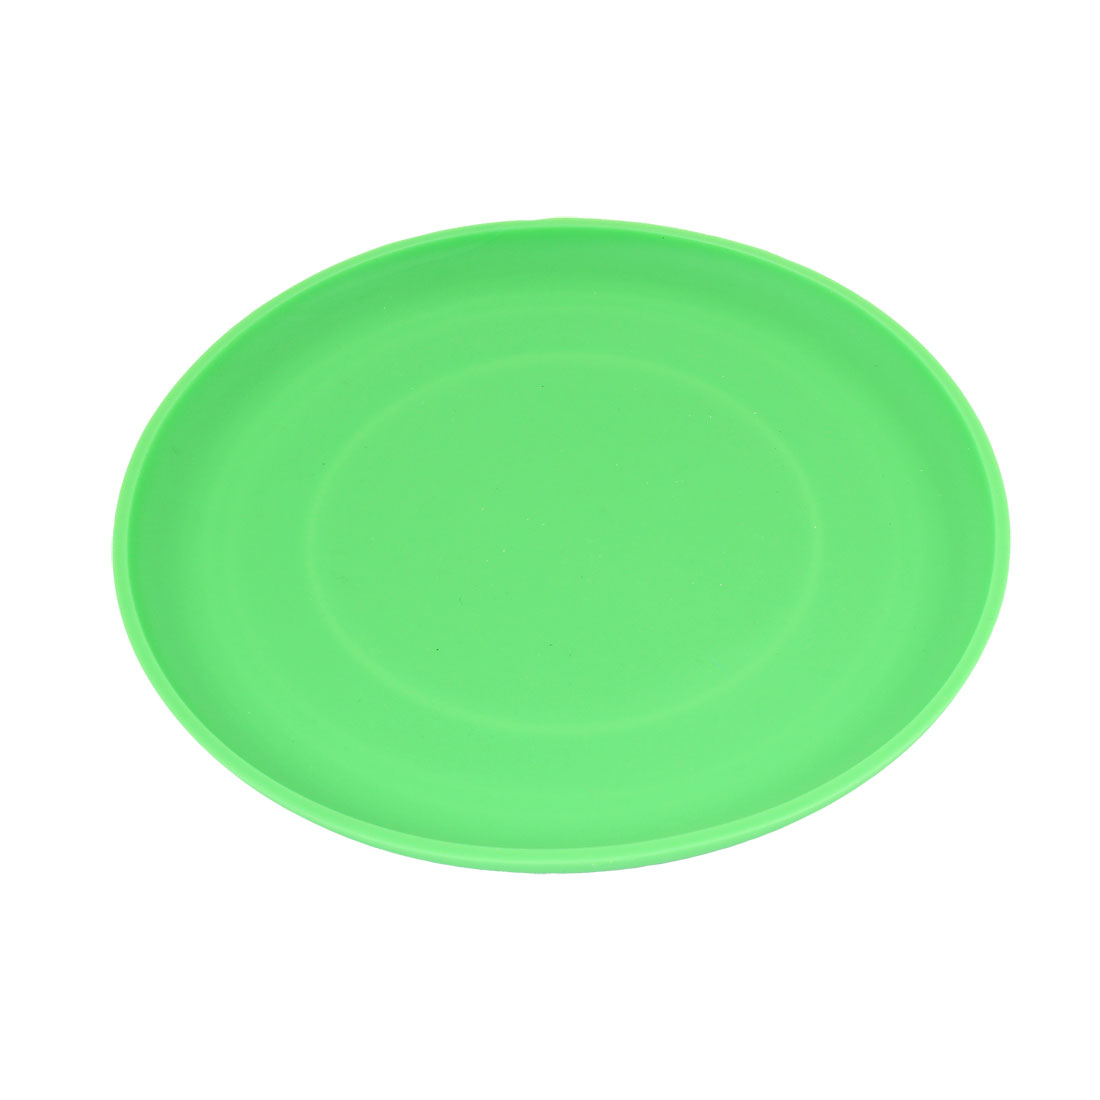 "6.7"" Diameter Green Silicone Flying Disc Frisbee Toy for Pet Doggie"